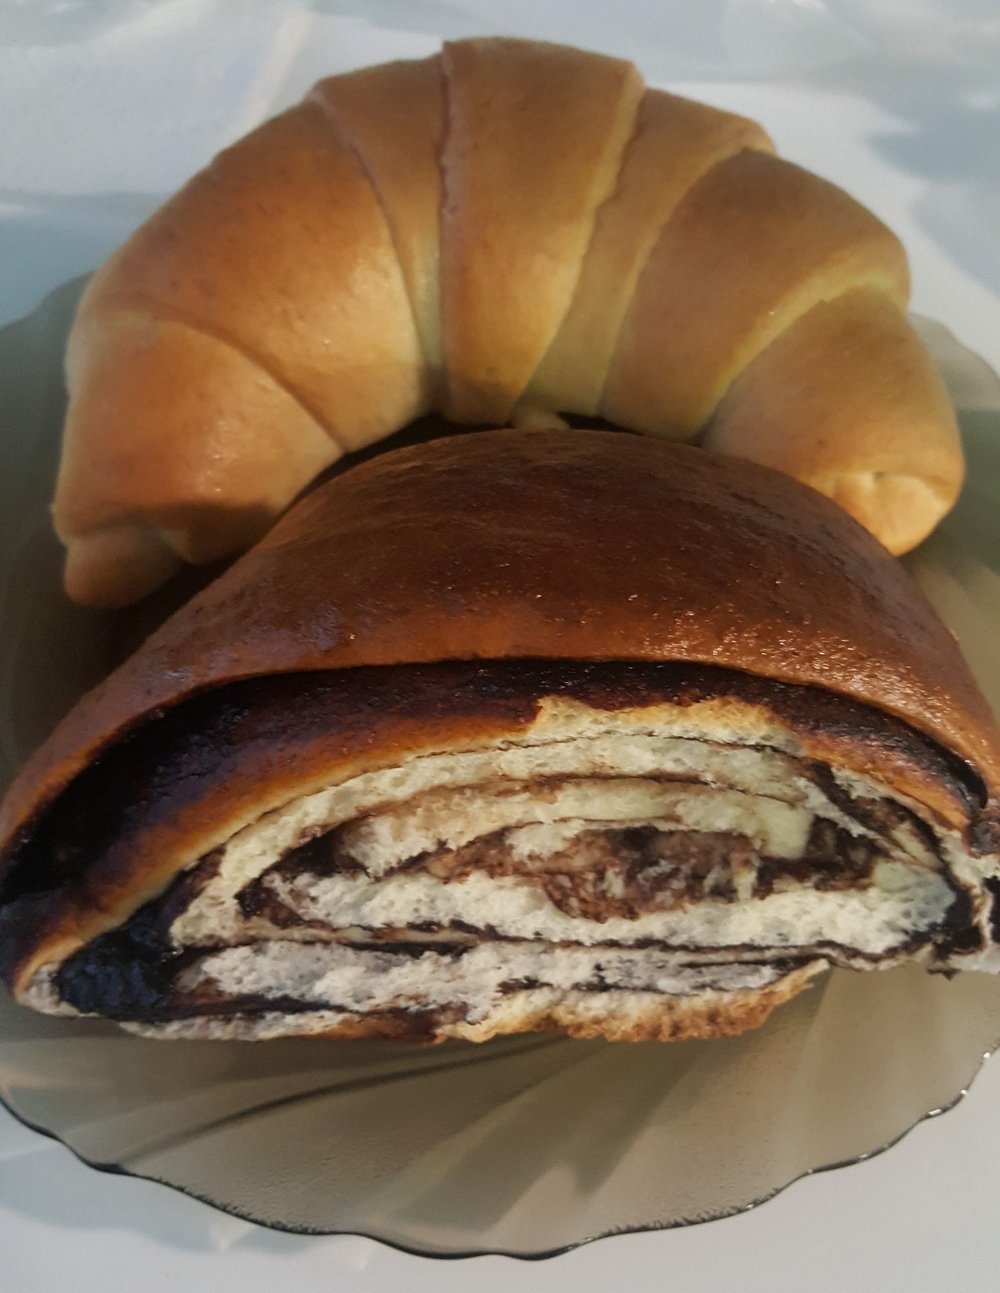 Pictured: Top: Crescent-shaped bread (Kifli), Bottom: Layered swirl bread with chocolate filling. Photographer: Ruxandra Chitac.